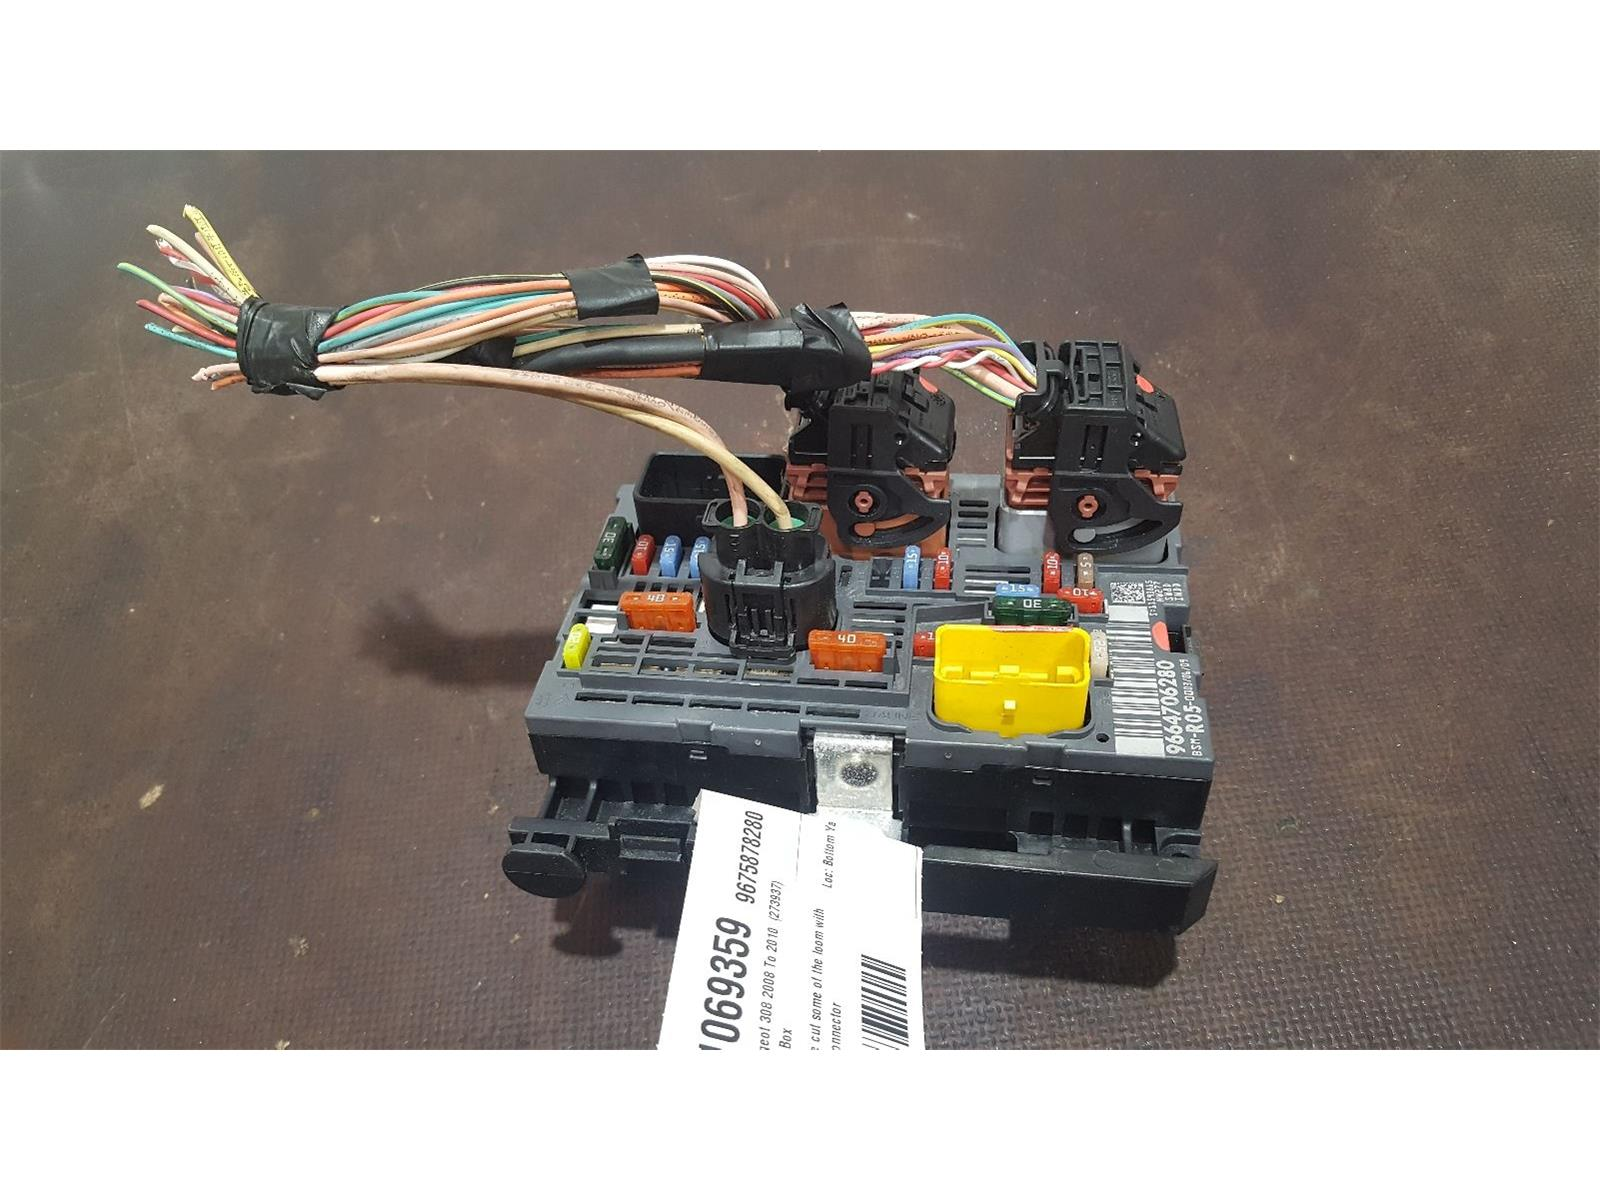 Peugeot 308 Fuse Box Cover 2008 To 2010 Se Hdi Used And Spare Parts At Combellack Vehicle Recyclers